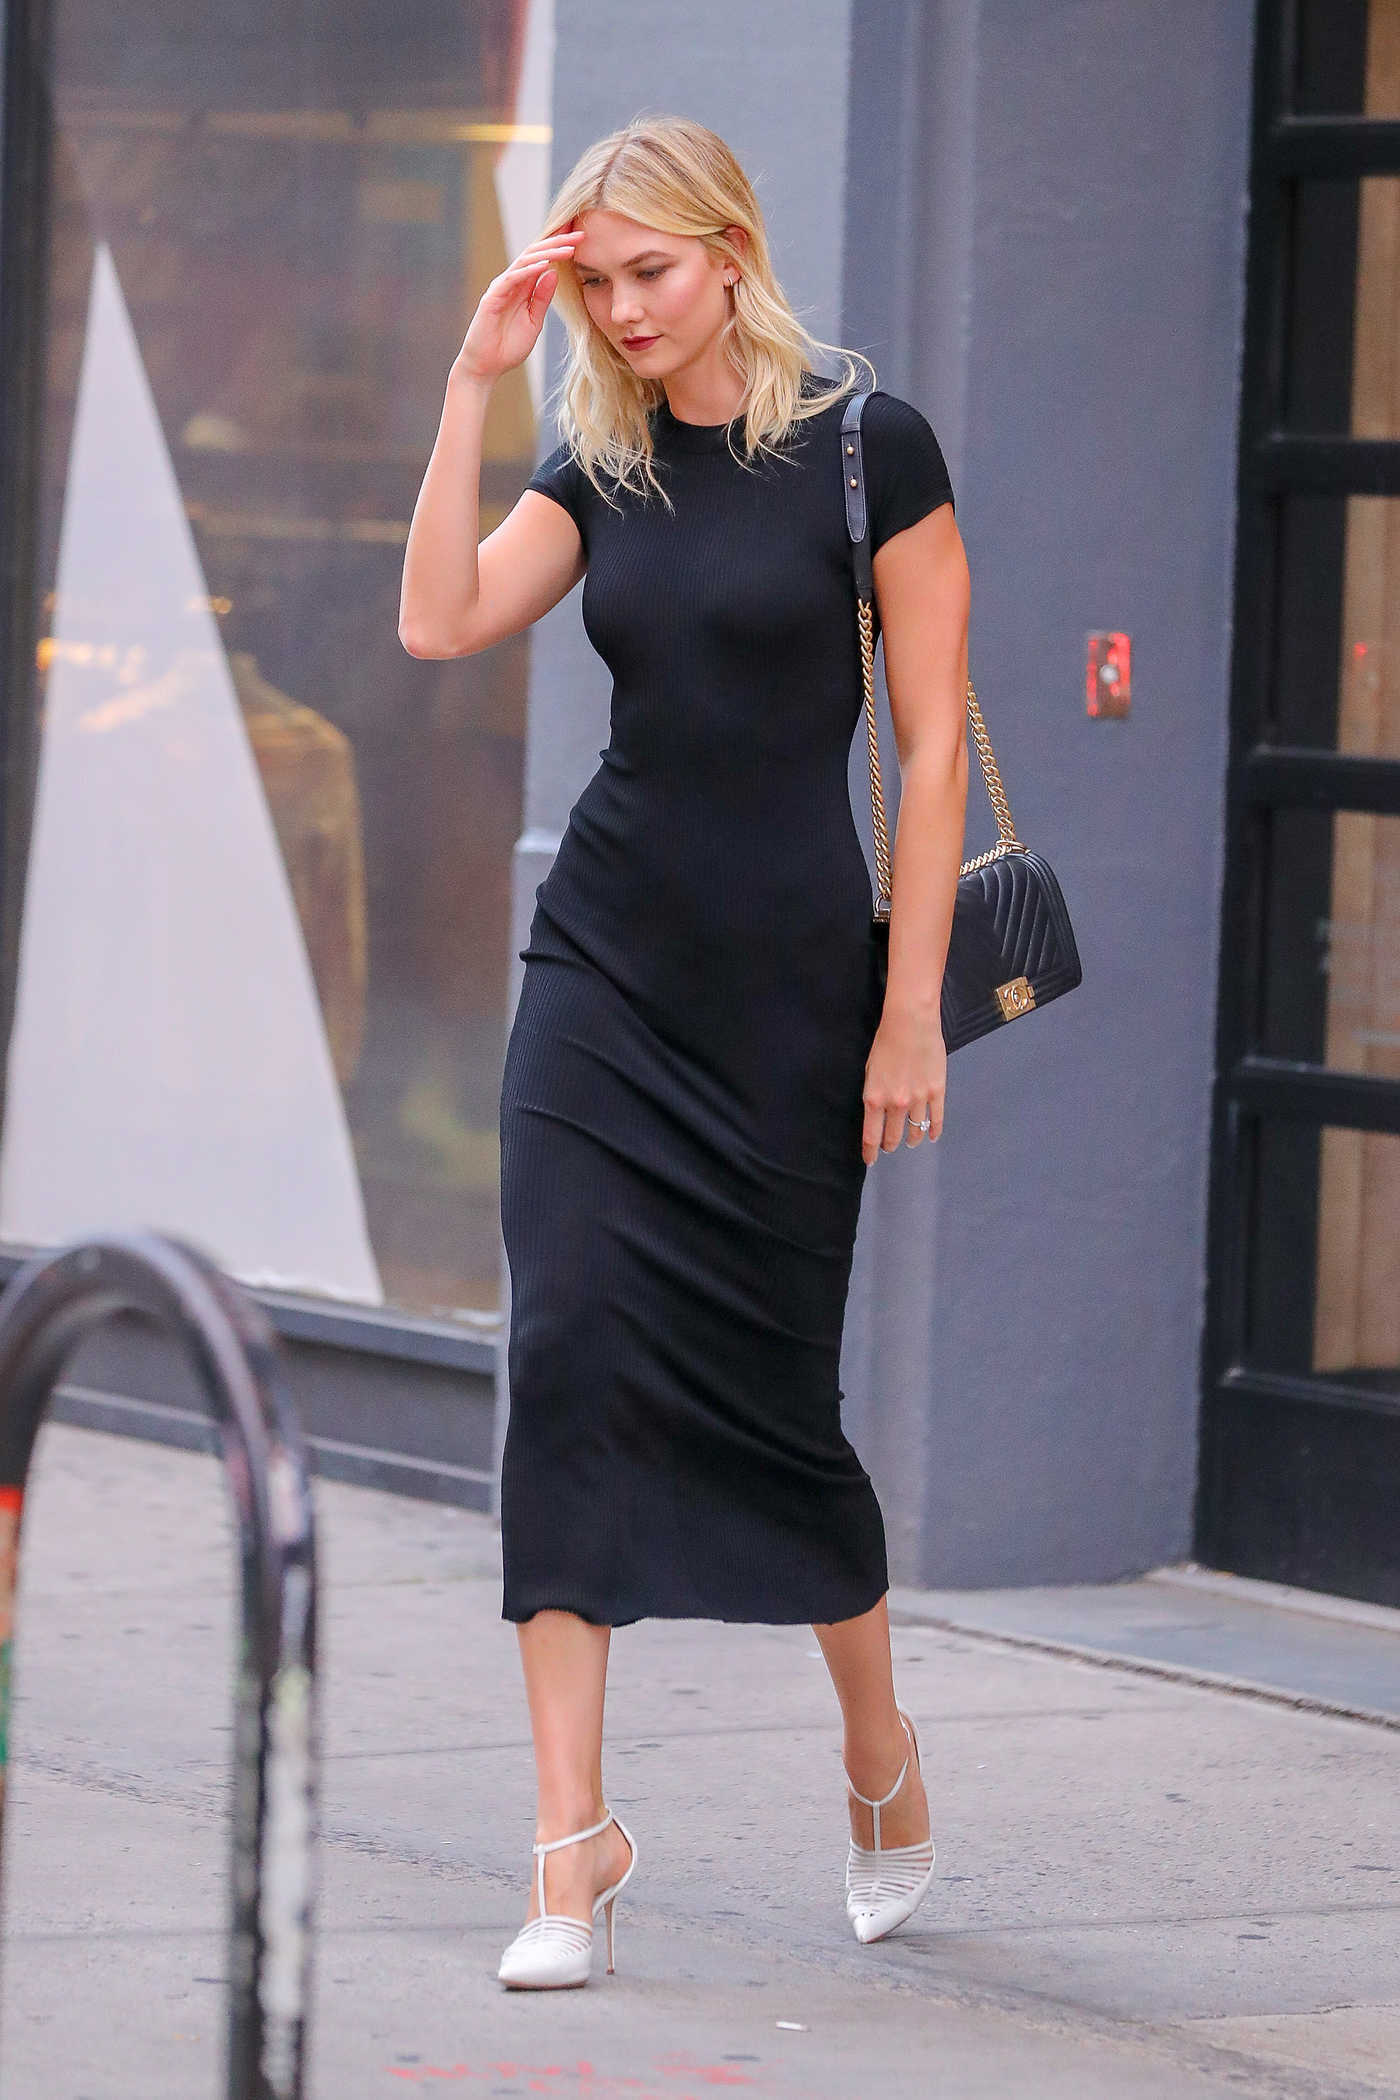 Karlie Kloss in a Long Black Dress Was Seen Out in New York 09/04/2018